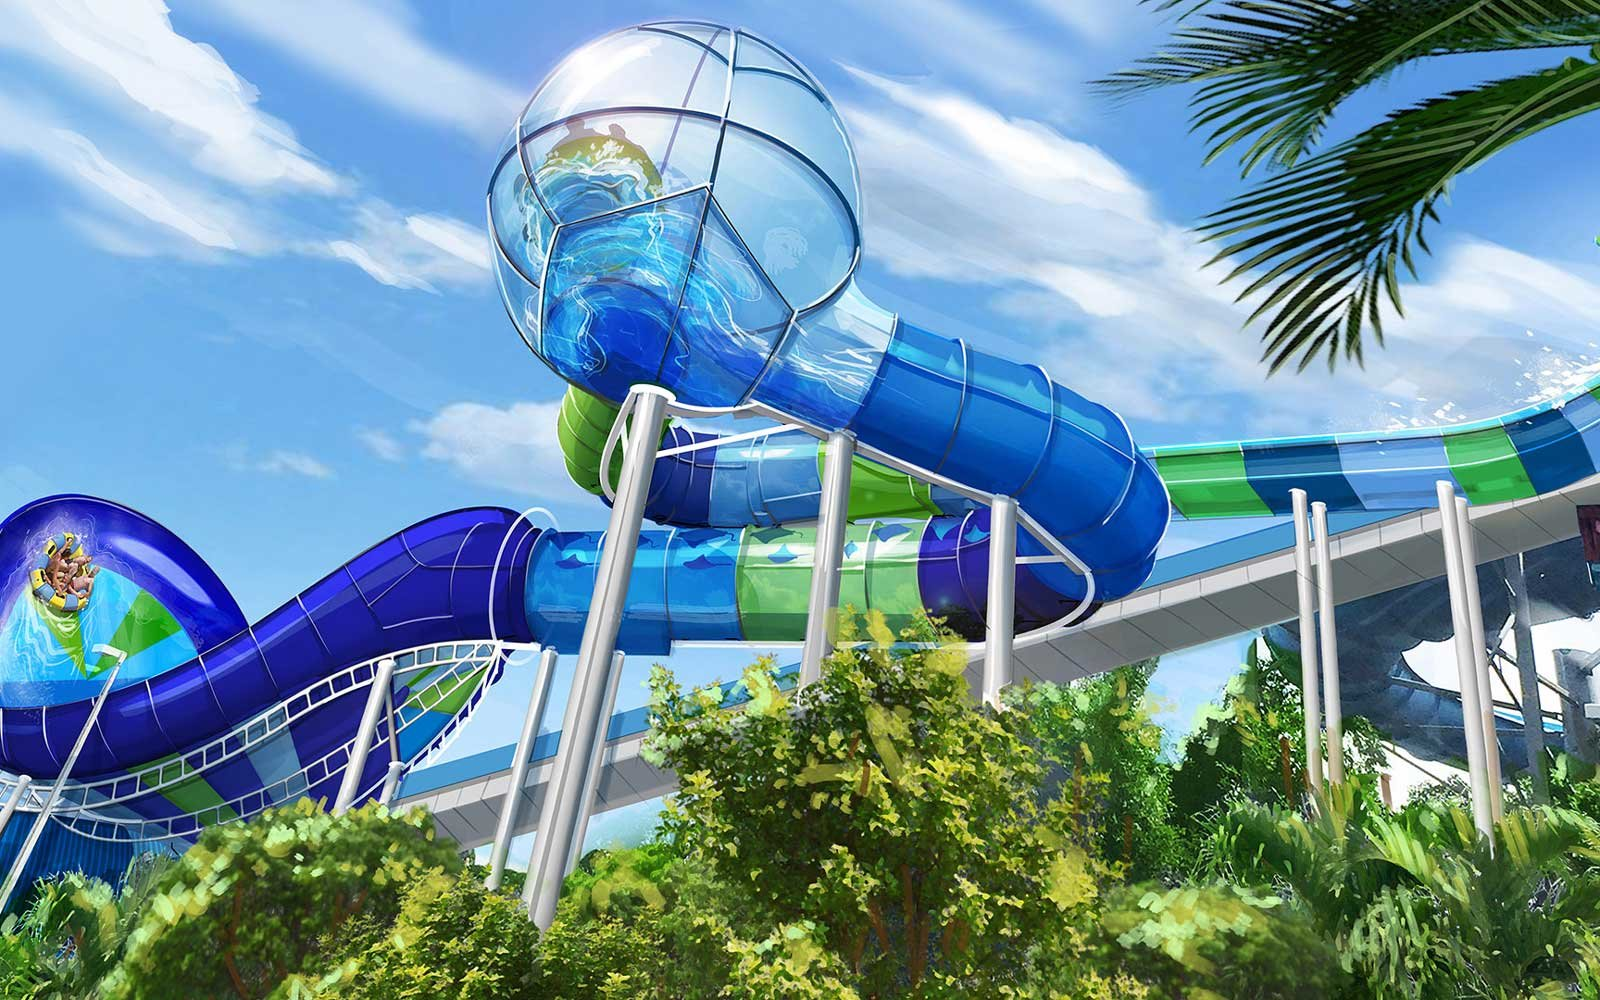 Rendering of the Ray Rush slide coming to SeaWorld Orlando in 2018